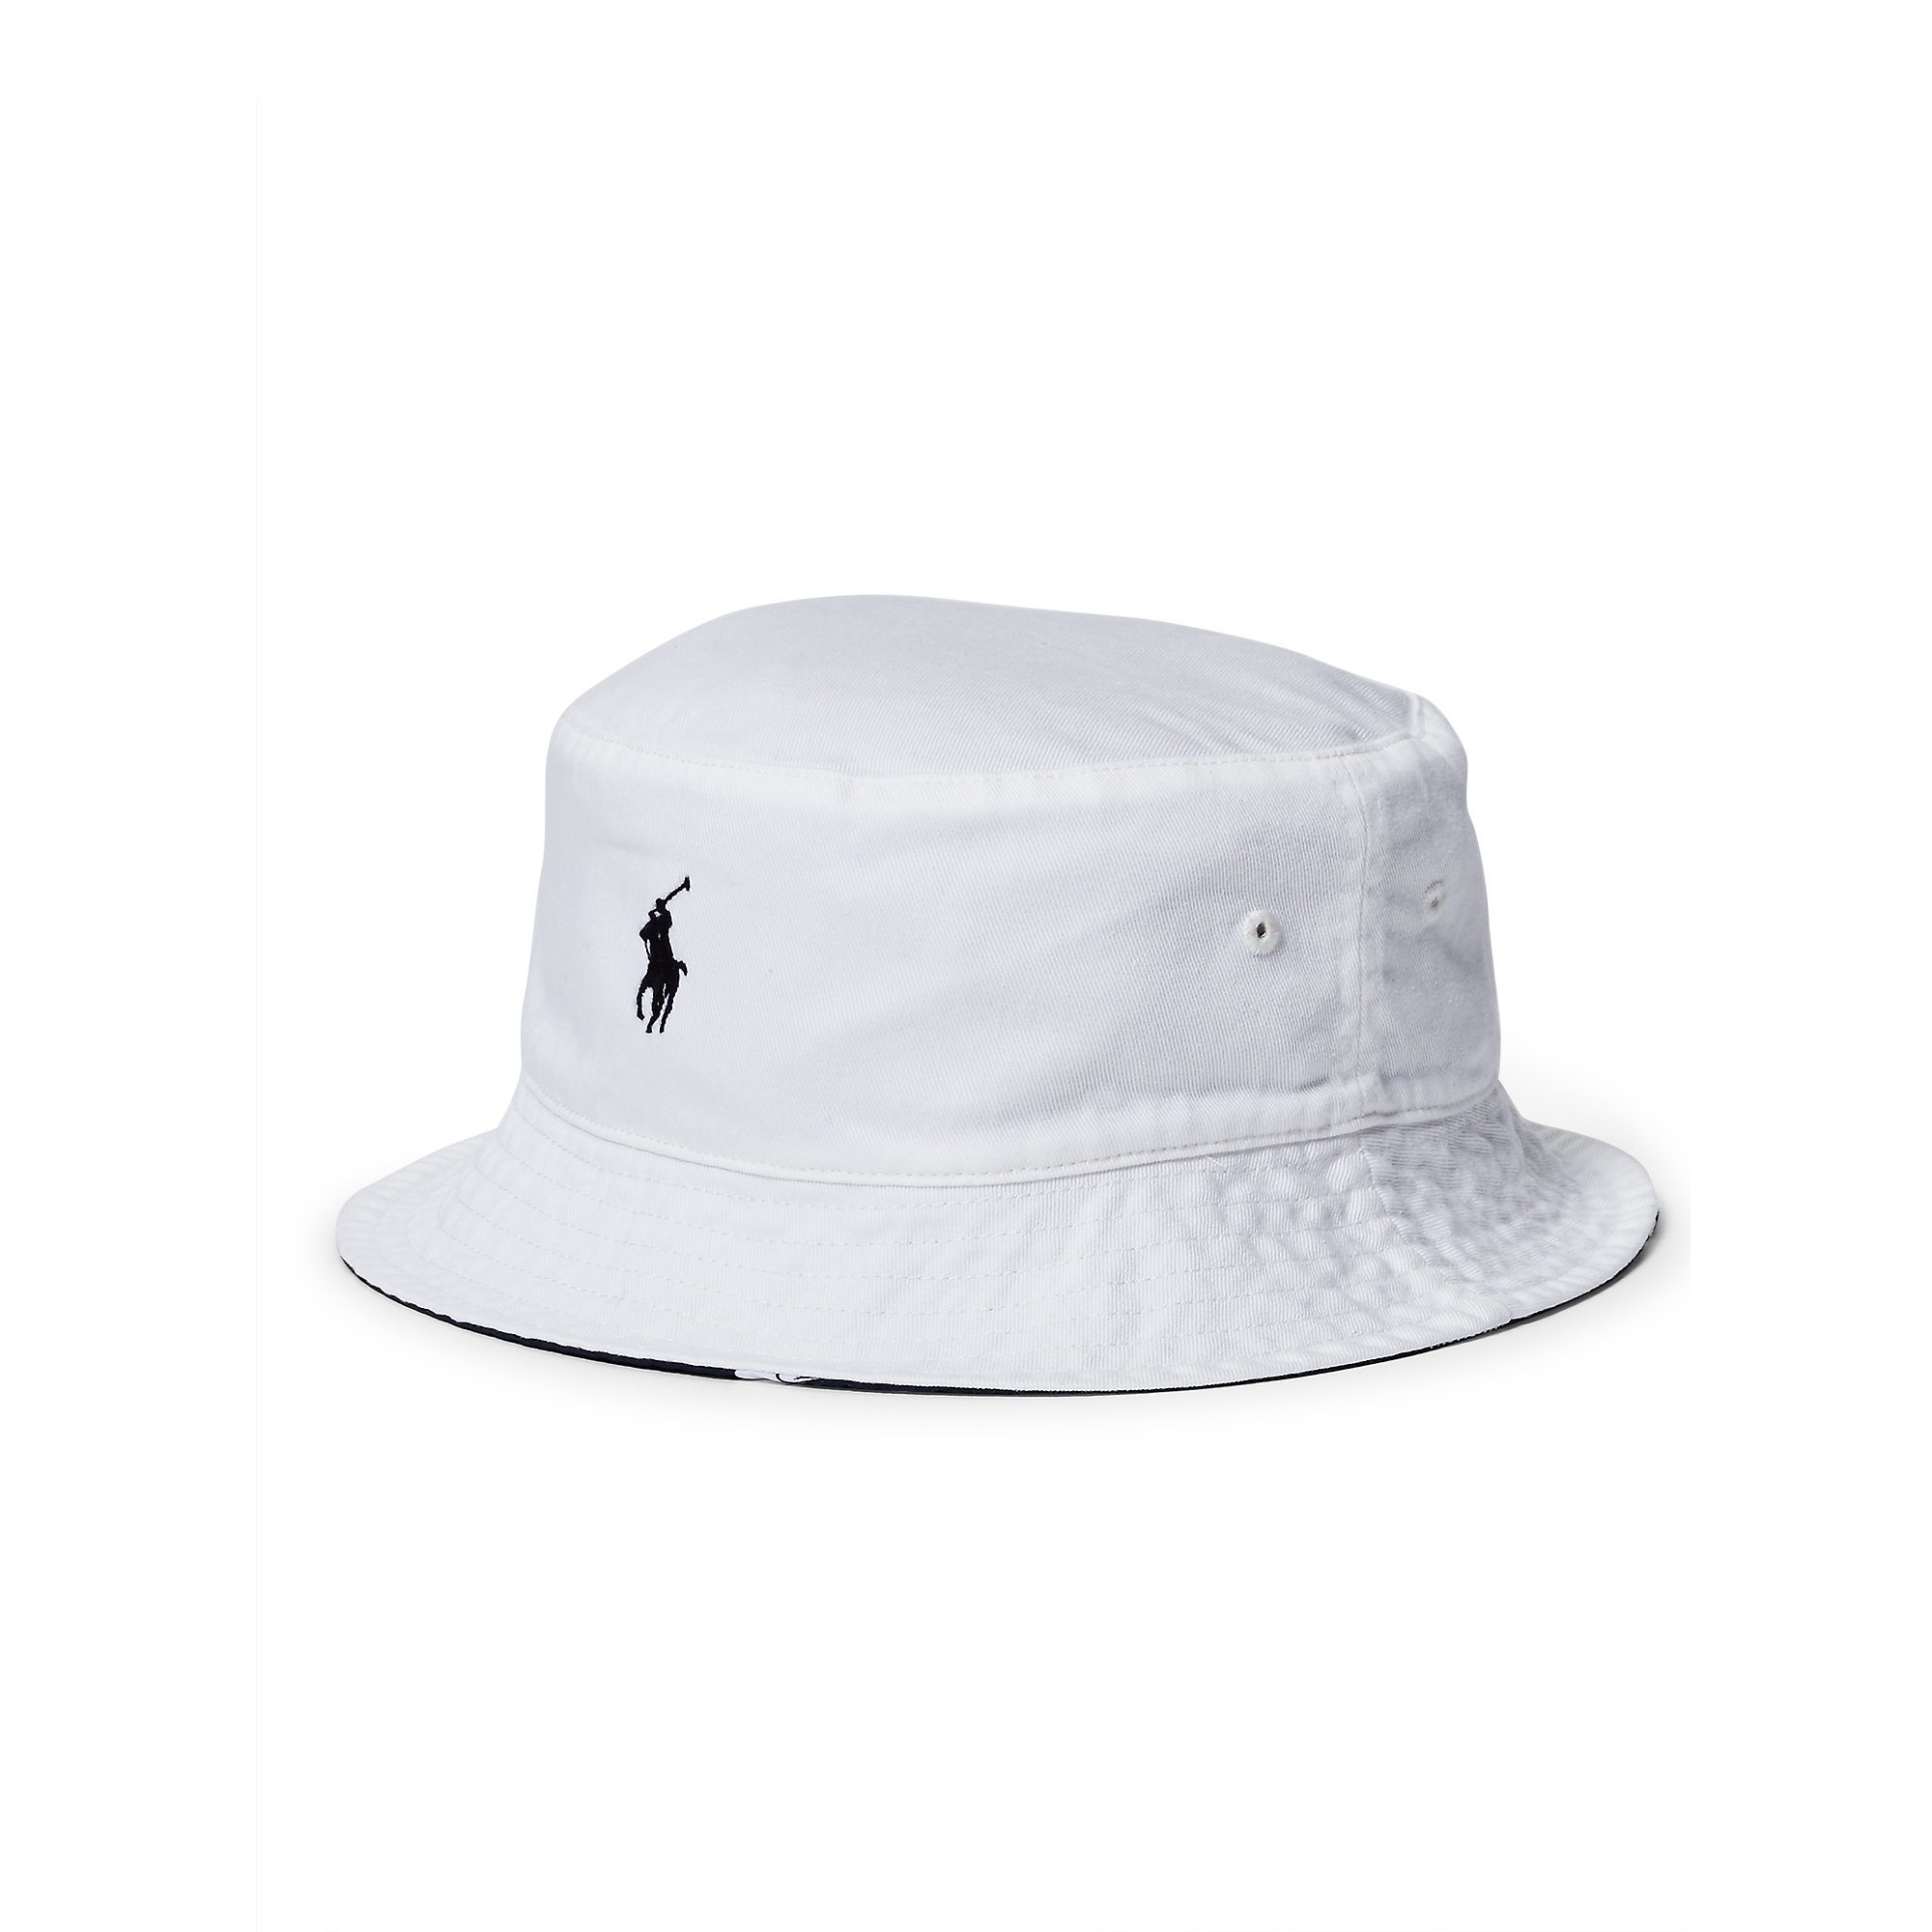 a91b11620751b Polo Ralph Lauren Reversible Twill Bucket Hat in White for Men - Lyst